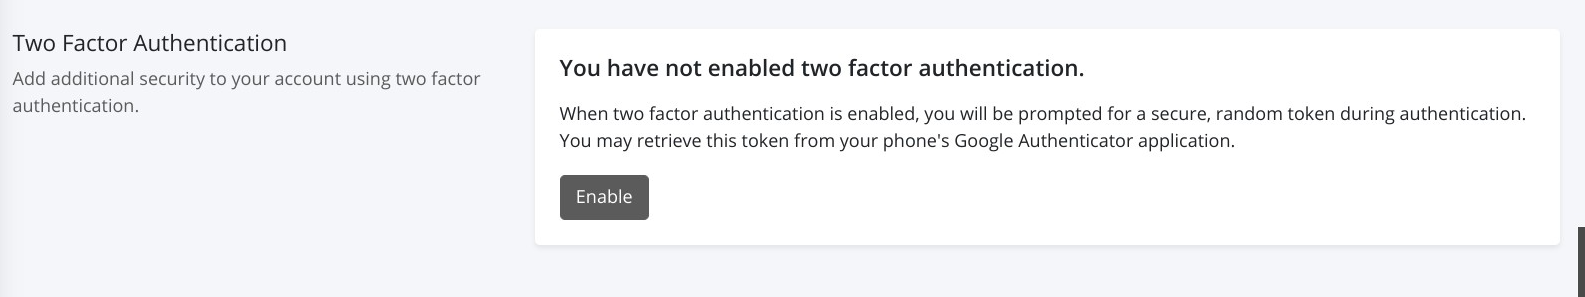 Click Enable to turn on two factor authentication